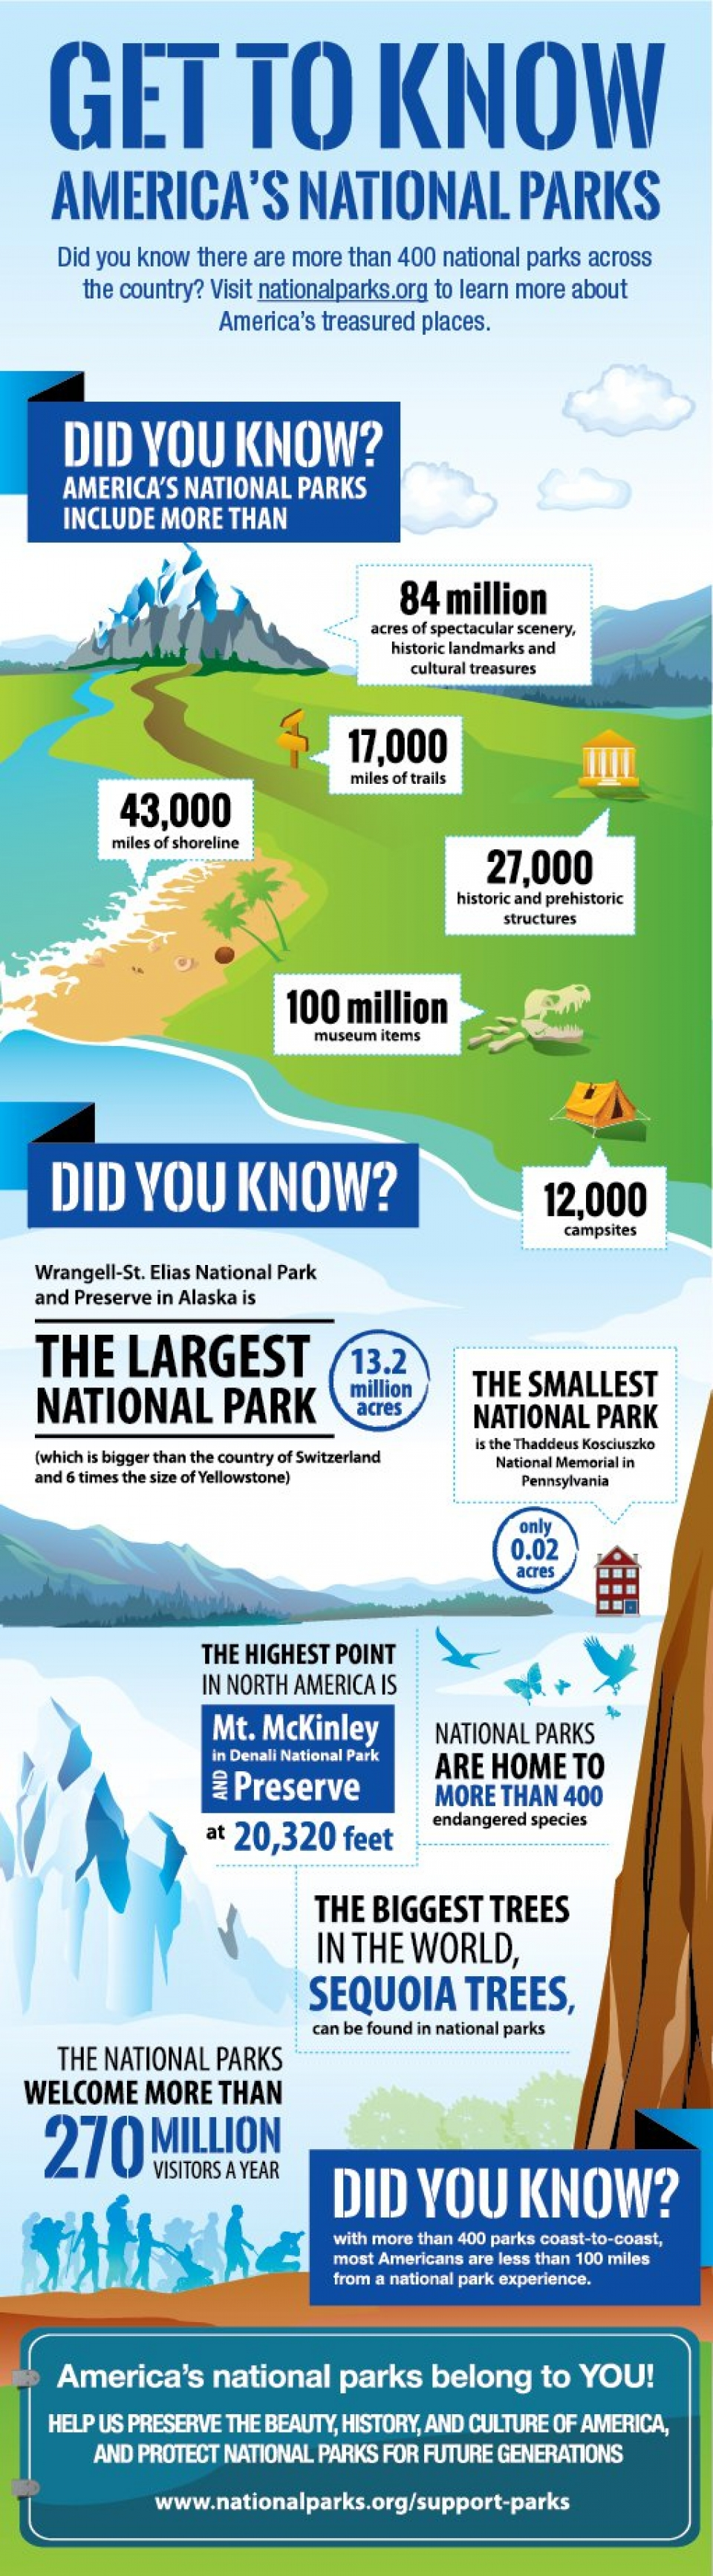 National Park Foundation infographic